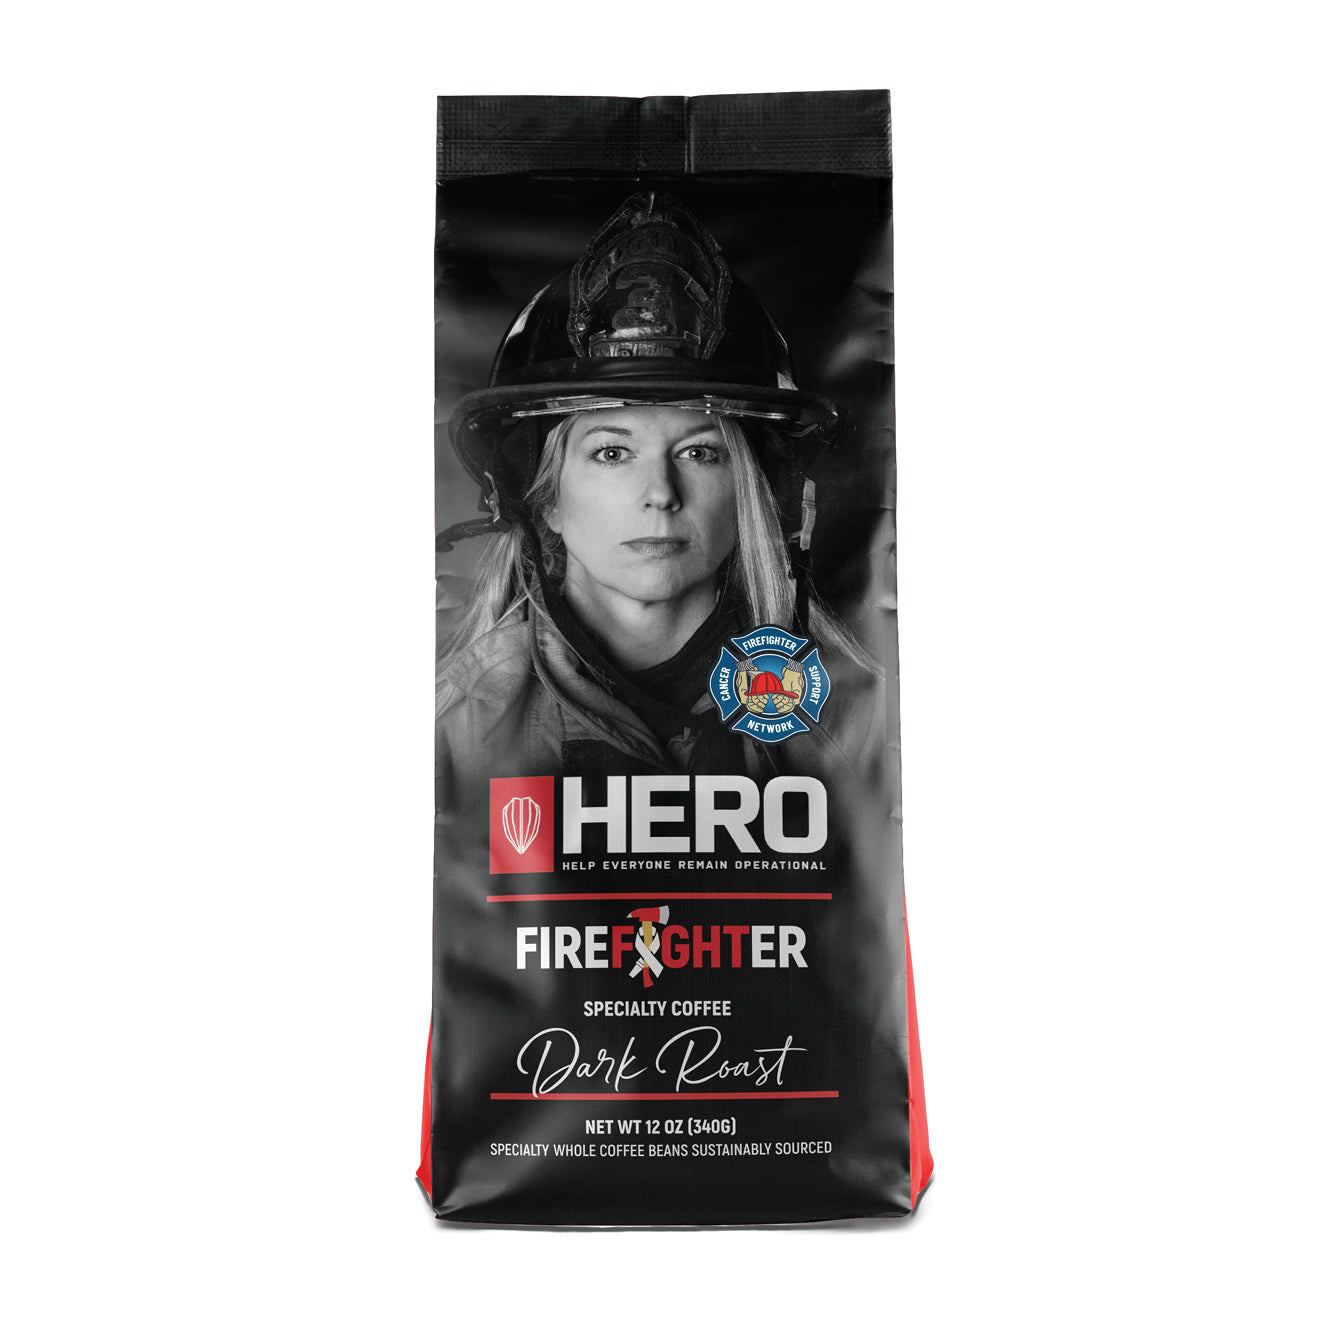 HERO Firefighter Blend Dark Roast Coffee